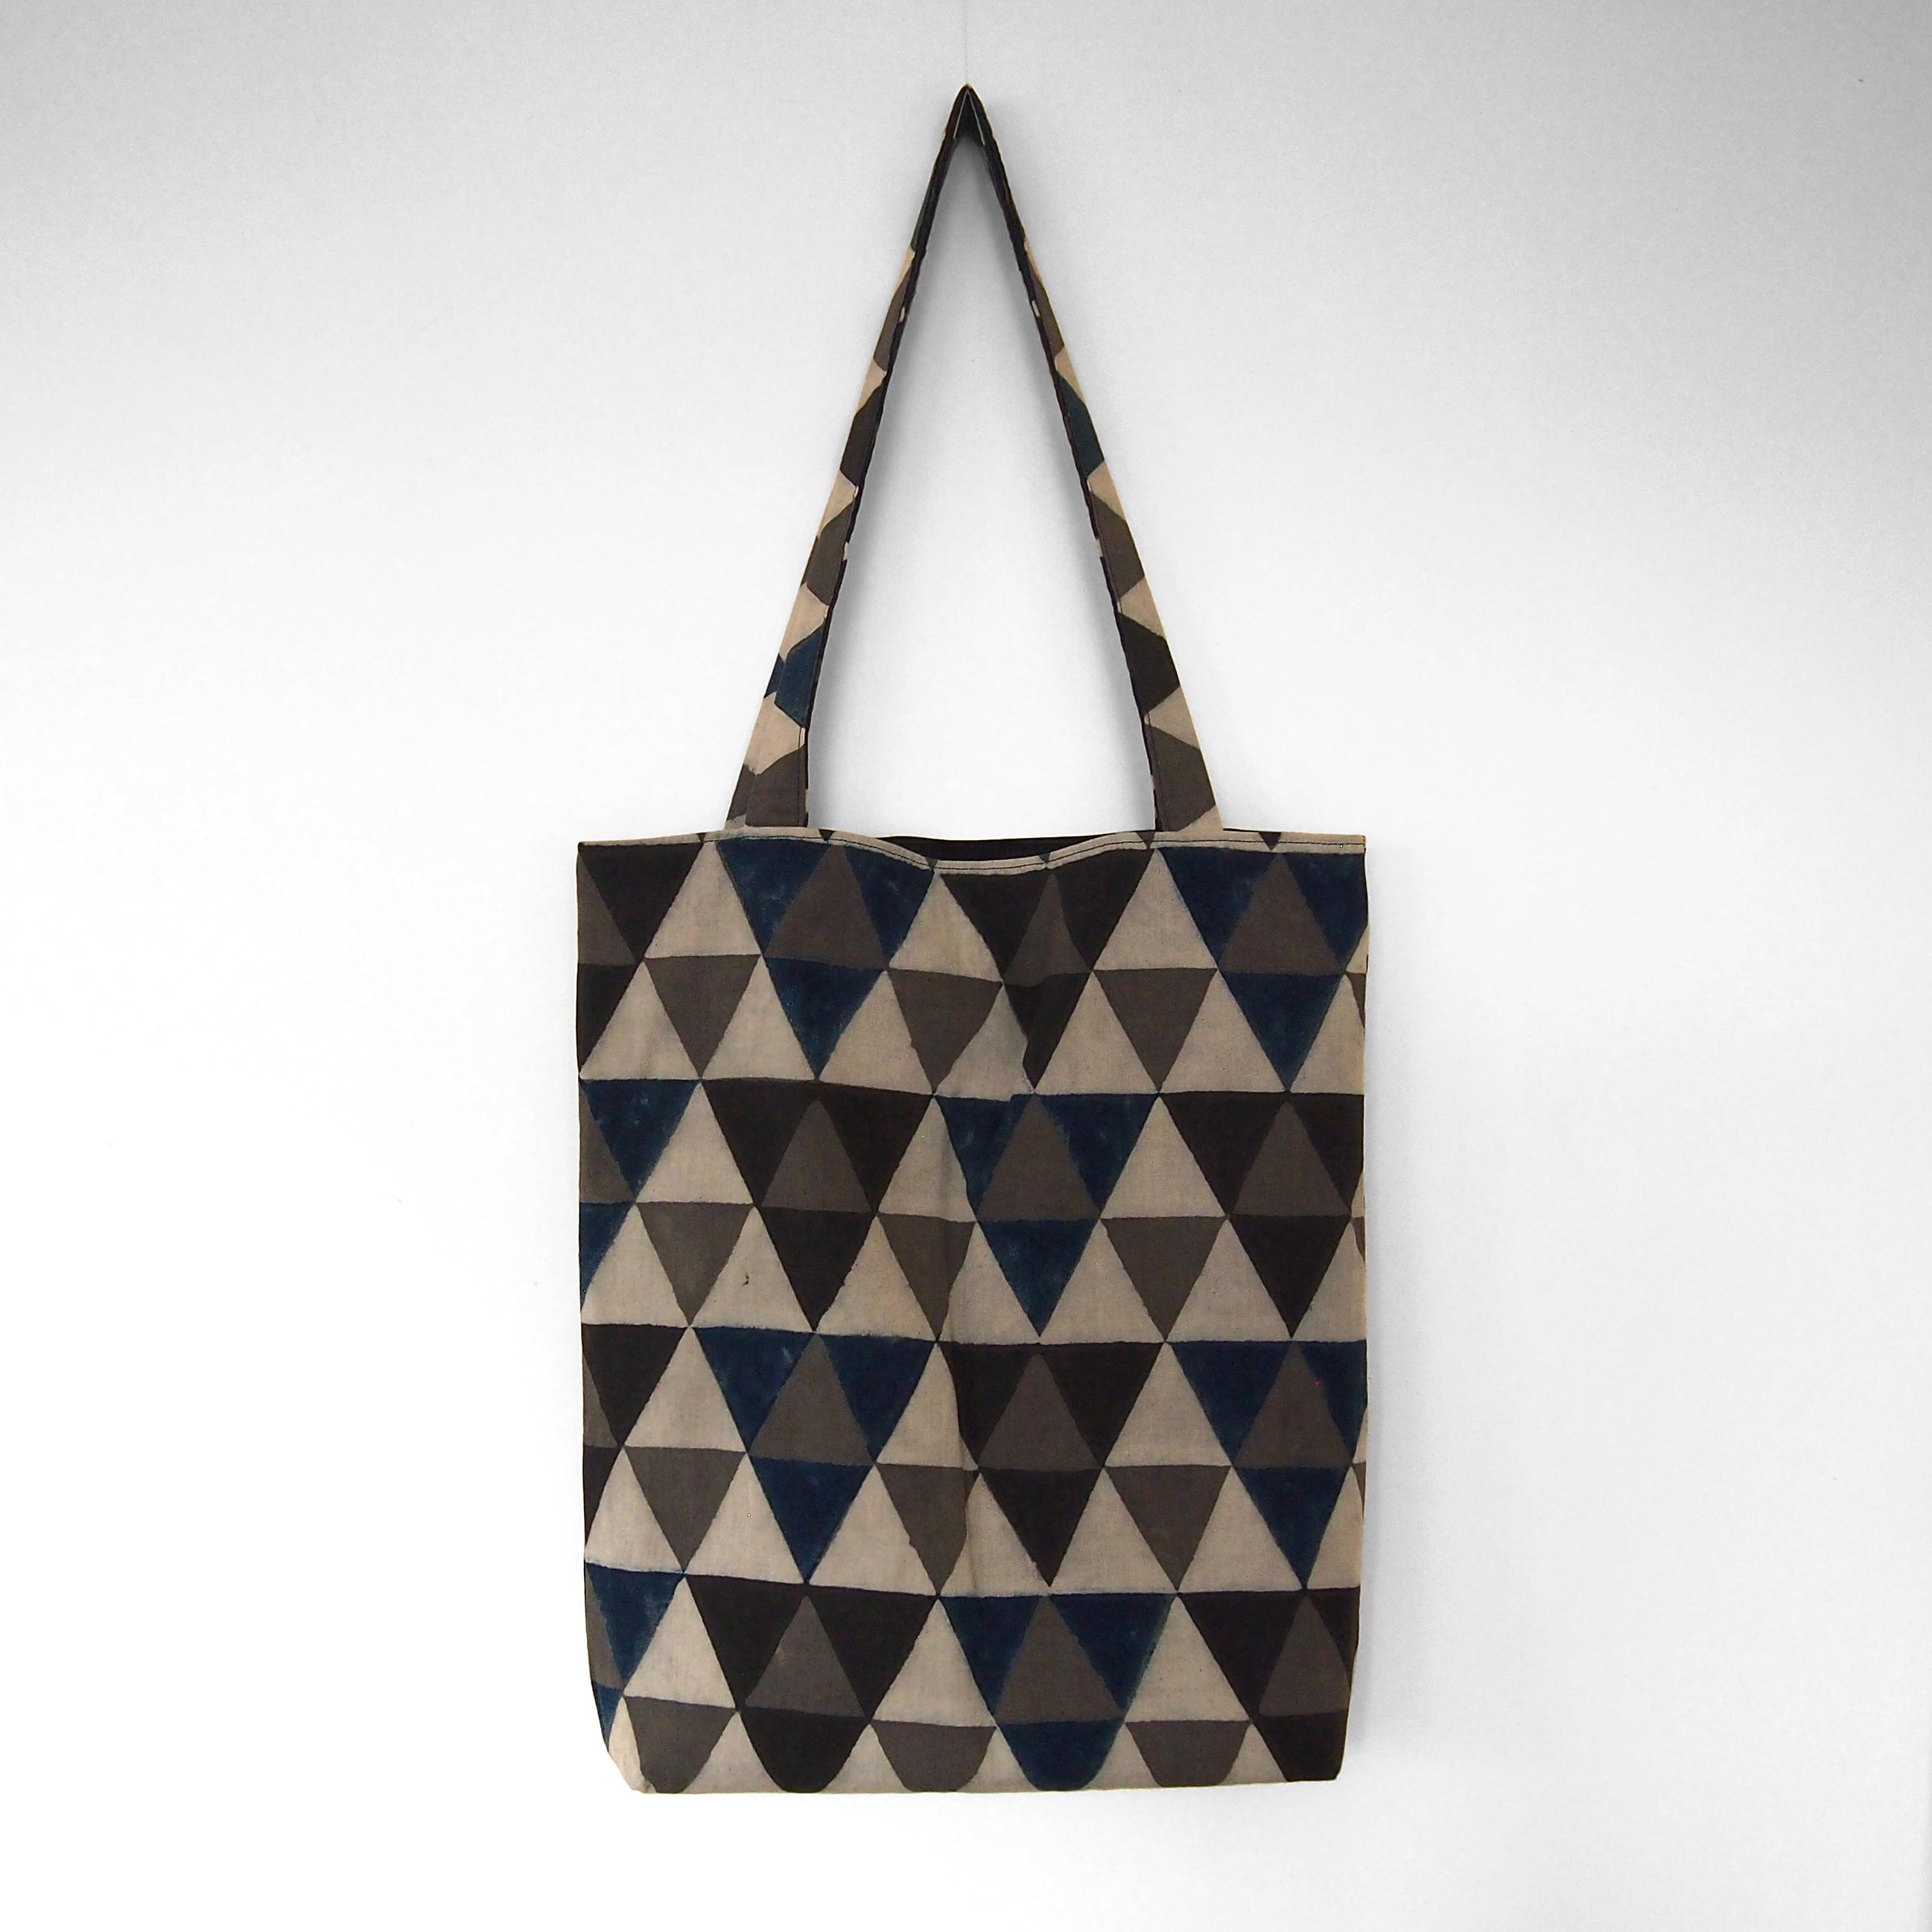 block printed cotton tote bag, natural dye, beige, blue black grey triangle design, lined with black cotton, closed